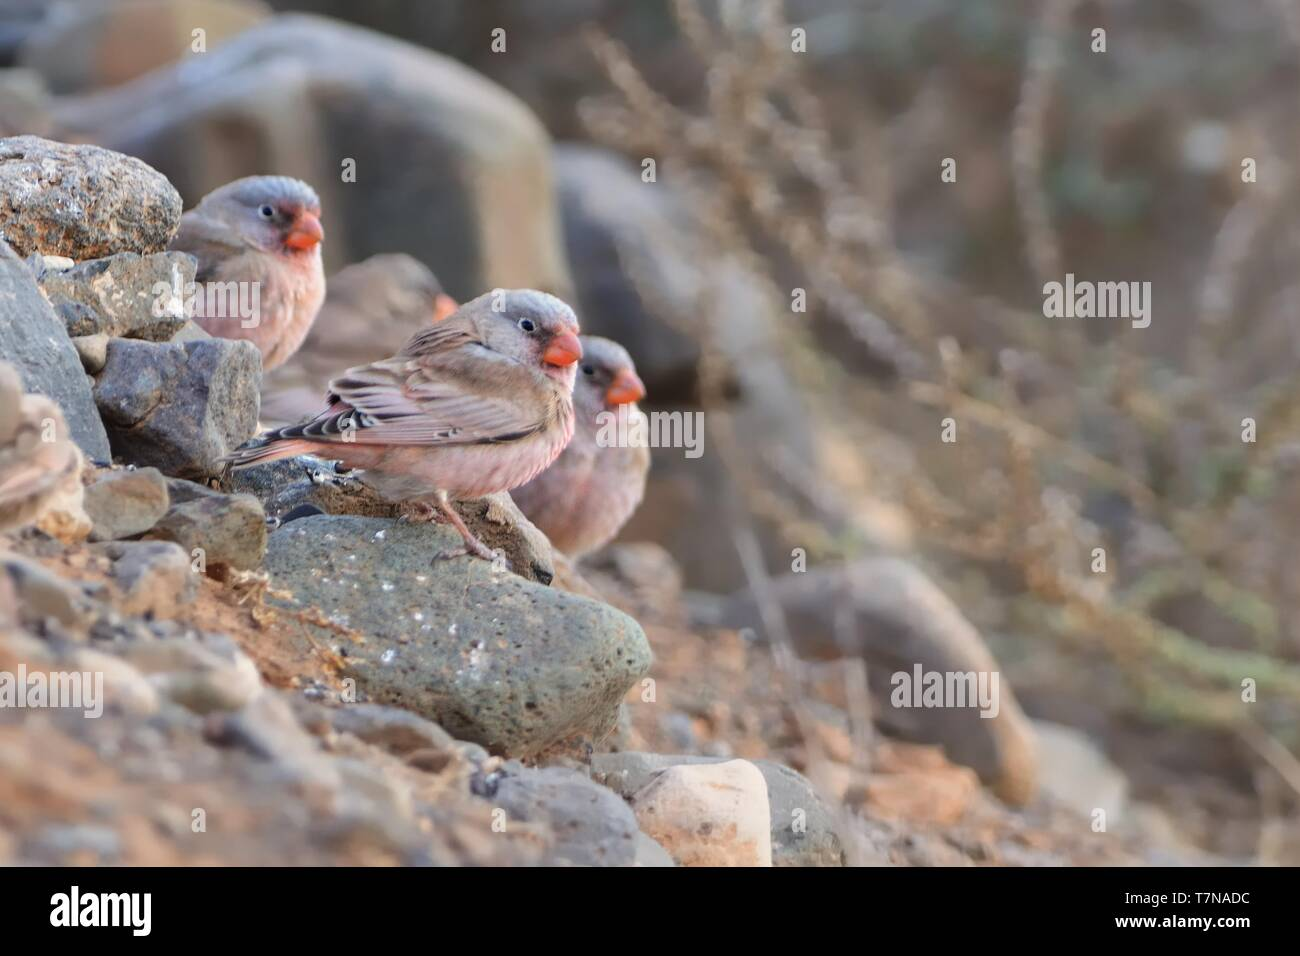 Flog of Trumpeter Finches - Bucanetes githagineus sitting on the rock, beautiful pink and gey song bird living in deserts and semi-deserts of the nort - Stock Image